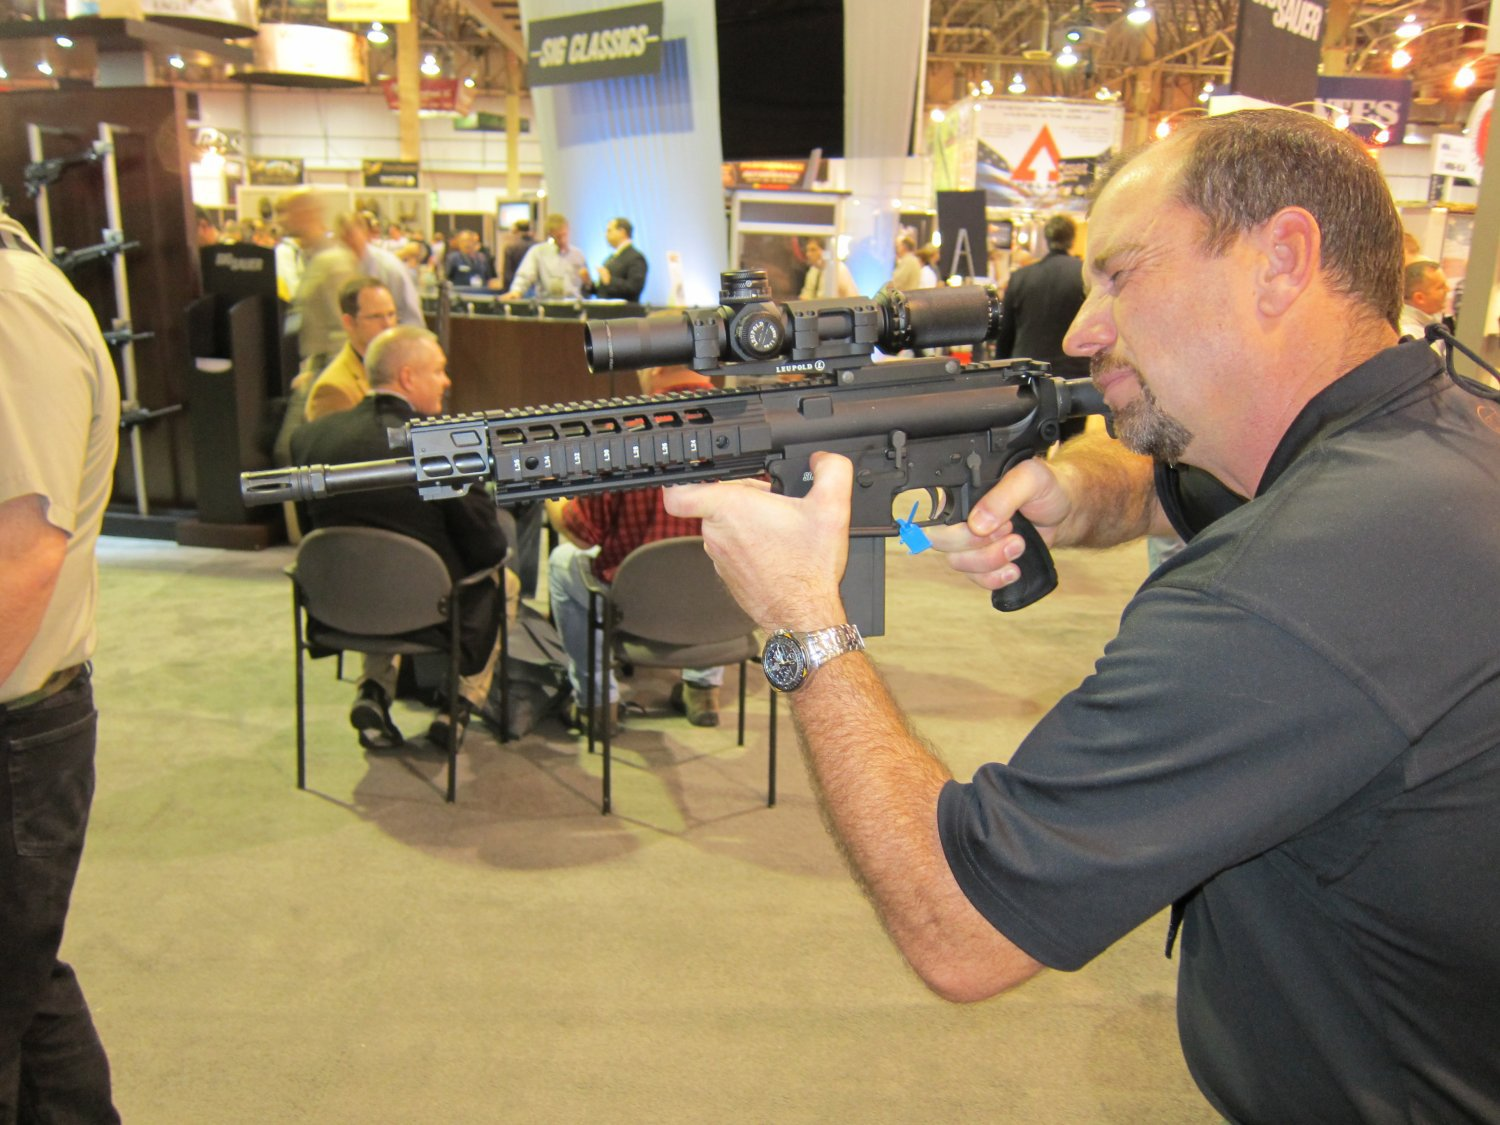 SHOT Show 2010 SIG SAUER SIG716 Gas Piston Op Rod Carbine SBR Series 3 <!  :en  >SIG Sauer SIG516 (5.56mm) and SIG716 (7.62mm) Short Stroke Gas Piston/Op Rod System Tactical AR Rifle/Carbine/SBR Series at SHOT Show 2010 (Photos!) <!  :  >